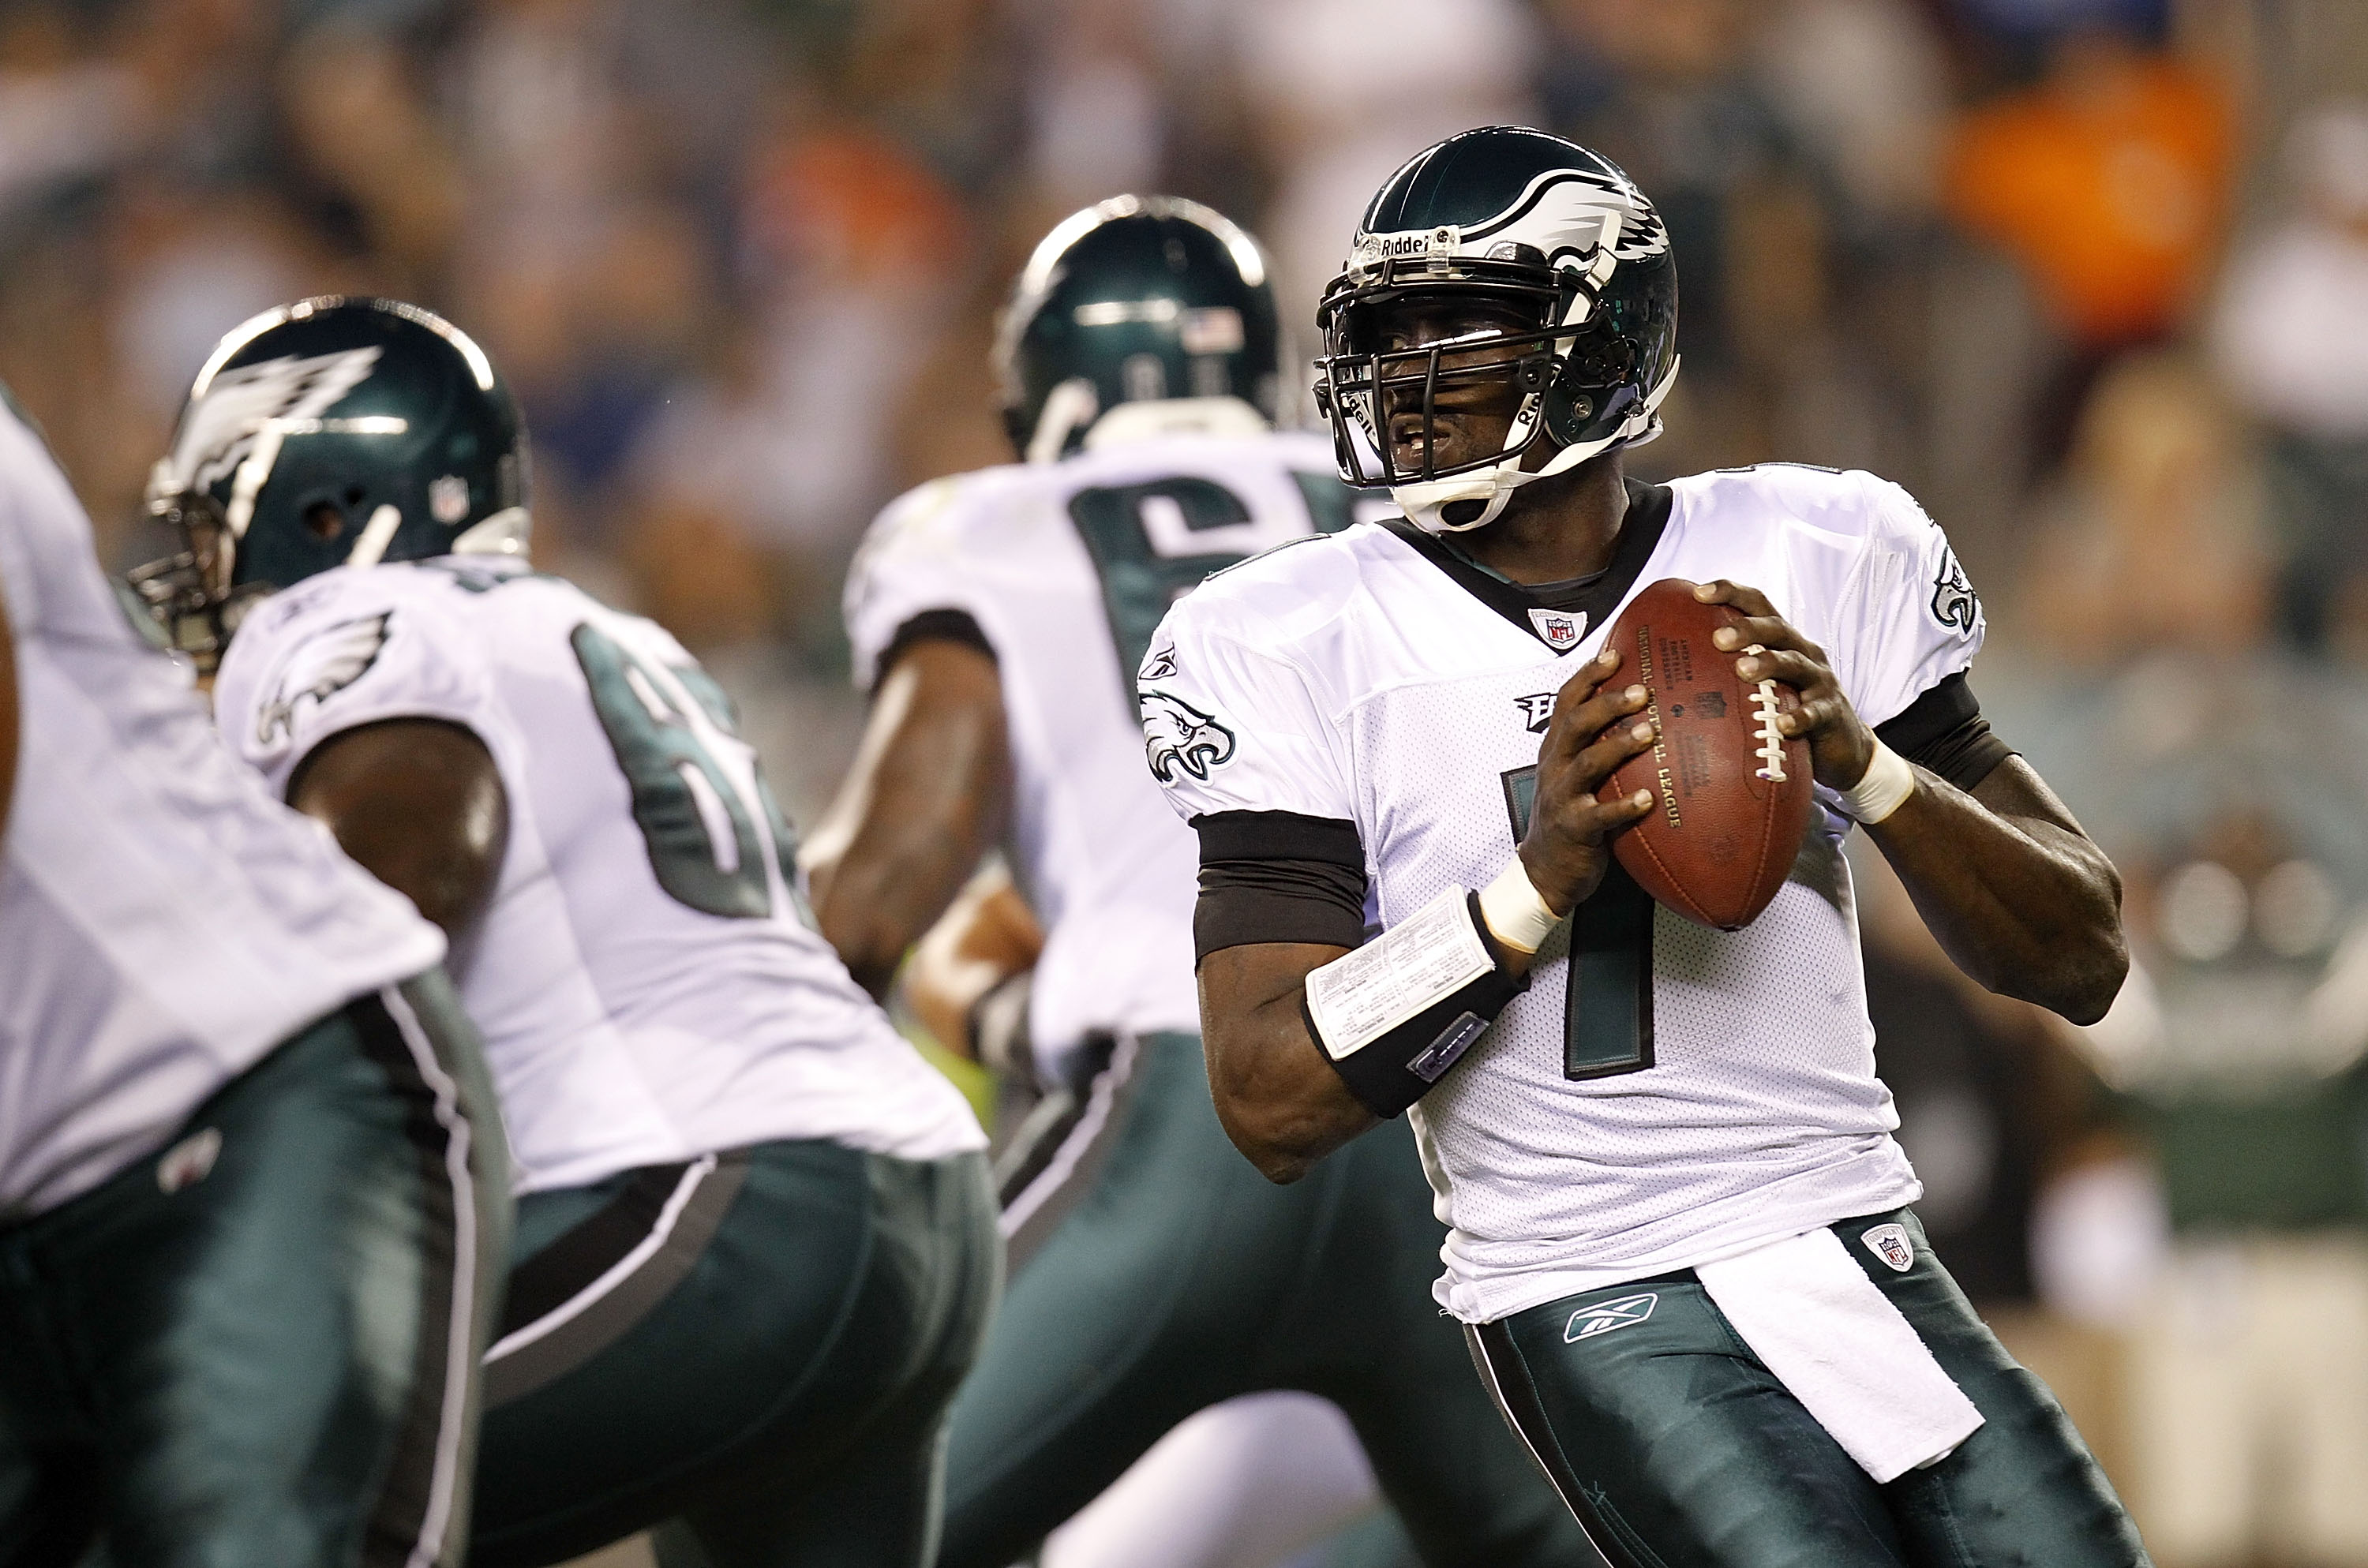 PHILADELPHIA - SEPTEMBER 02:  Michael Vick #7 of the Philadelphia Eagles drops back to pass during a preseason game against the New York Jets at Lincoln Financial Field on September 2, 2010 in Philadelphia, Pennsylvania.  (Photo by Jeff Zelevansky/Getty I